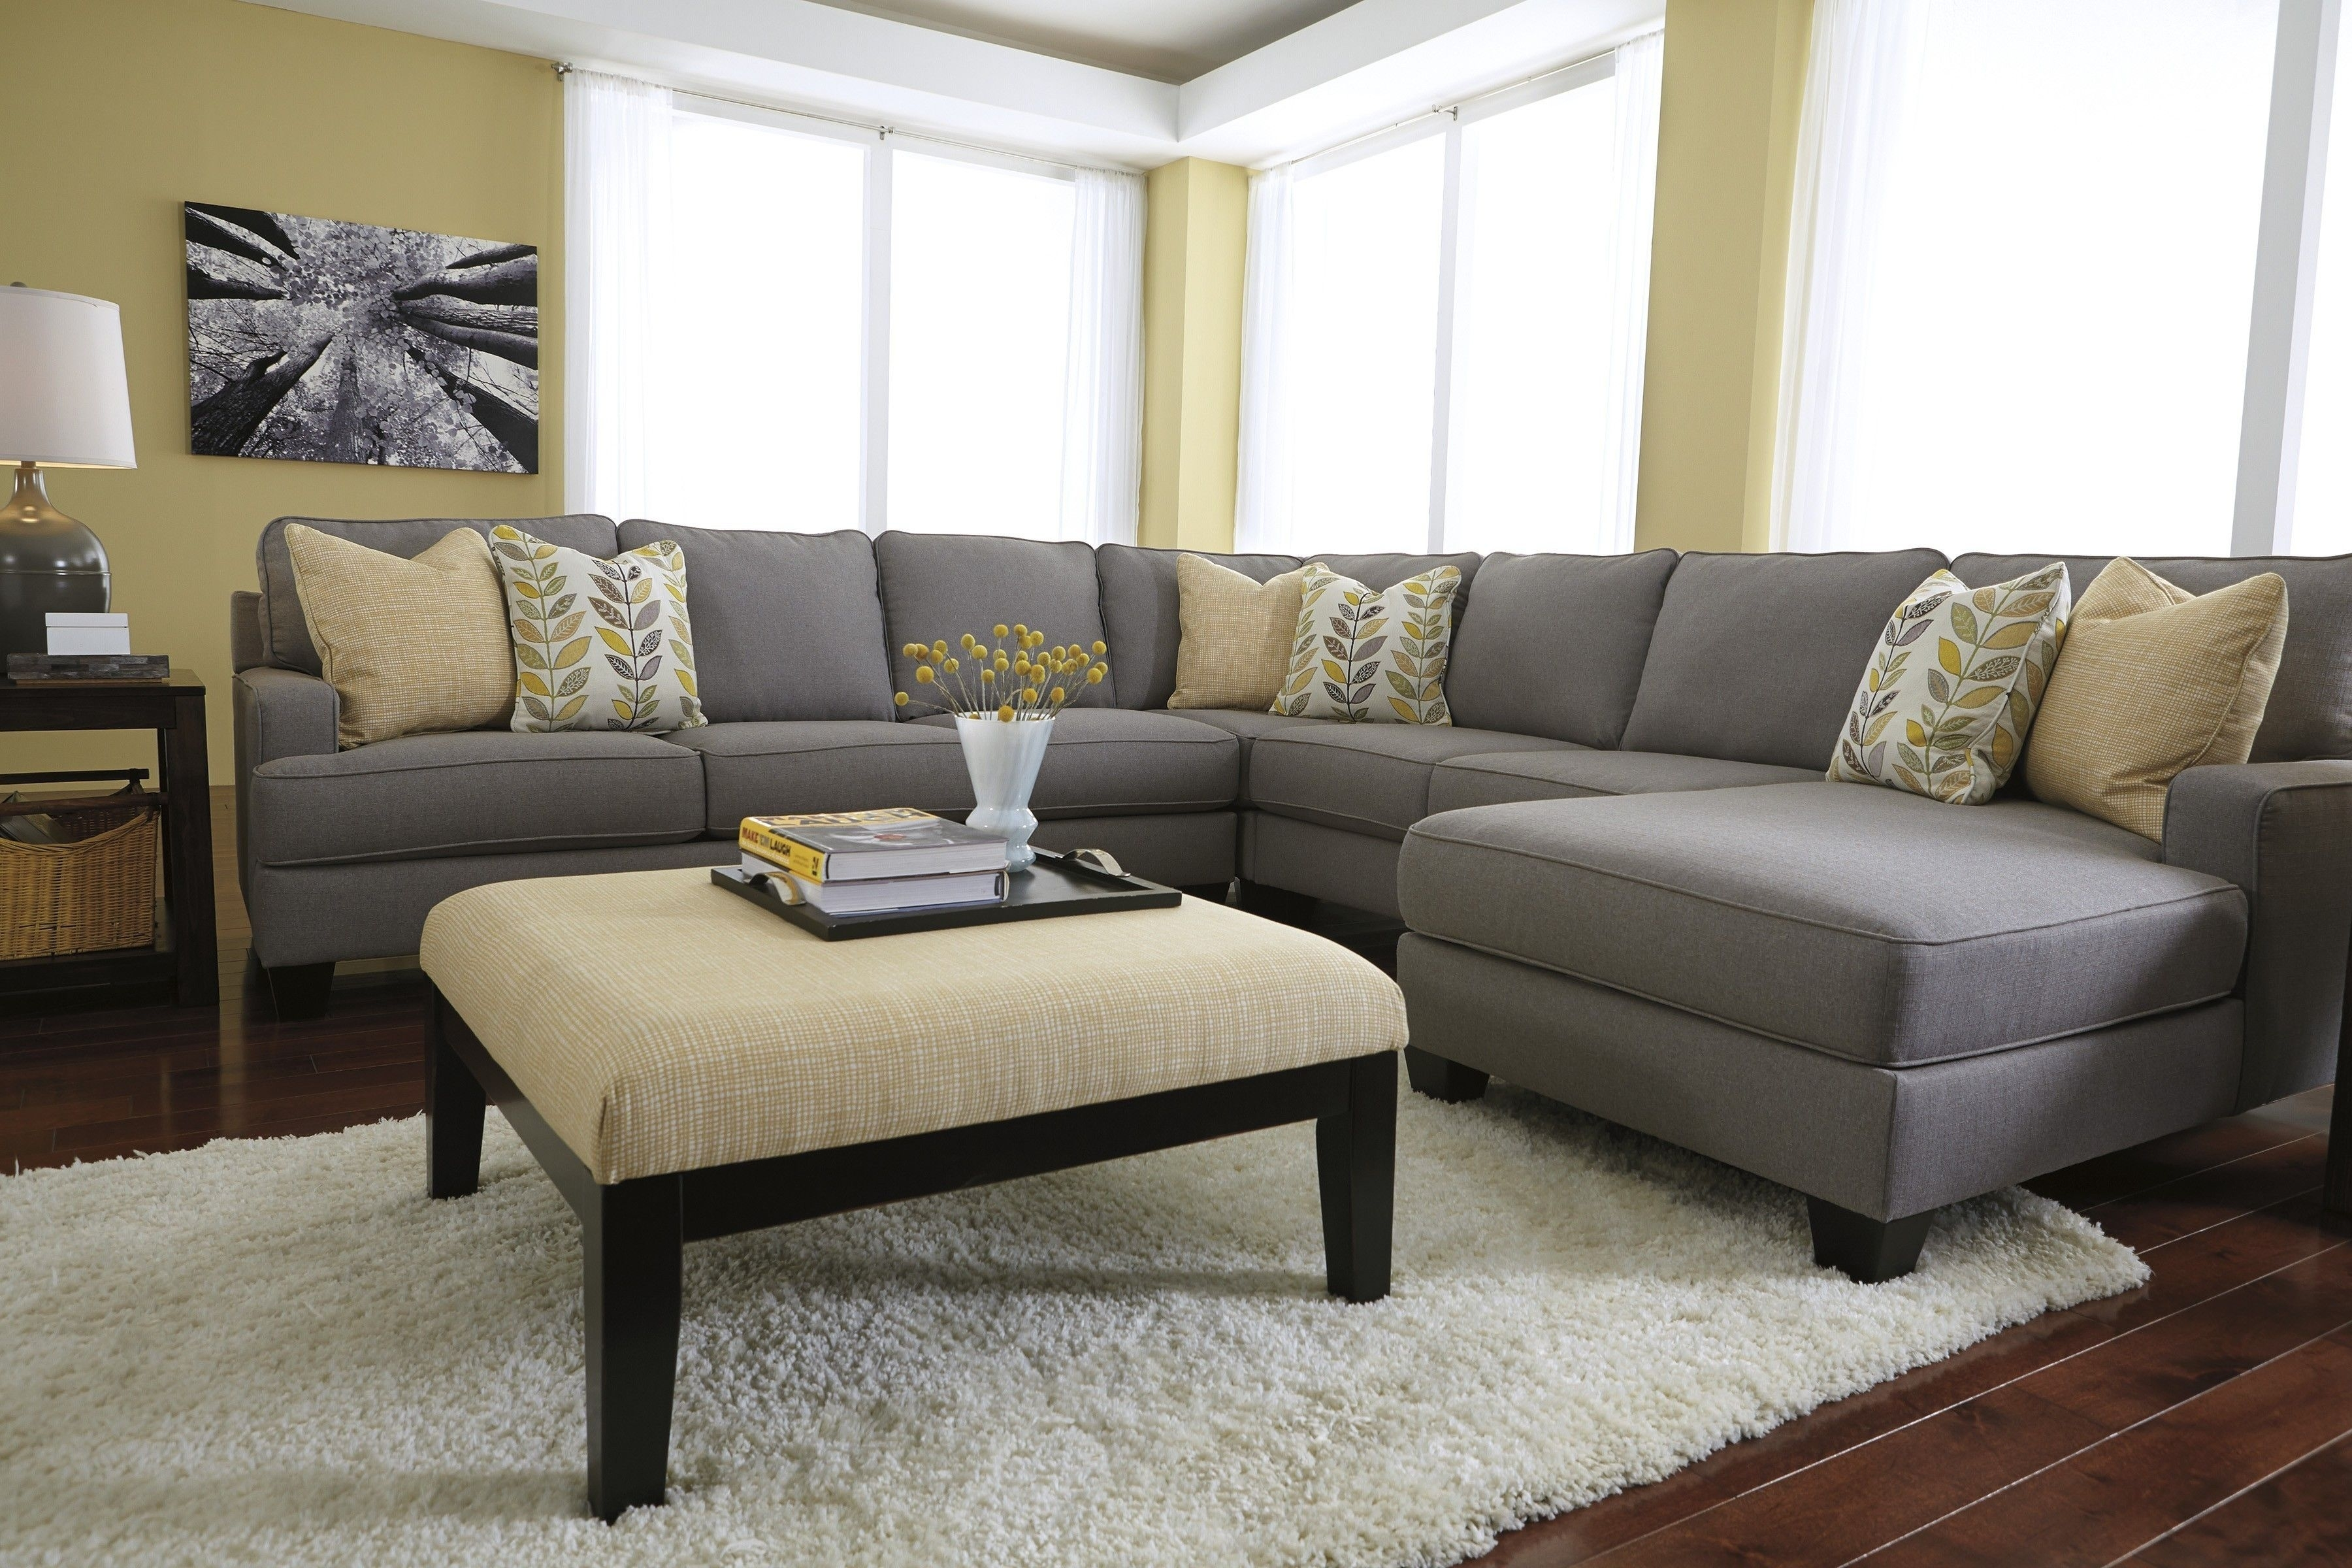 Cool Perfect Light Grey Sectional Sofa 49 With Additional Small Home in Ontario Canada Sectional Sofas (Image 1 of 10)